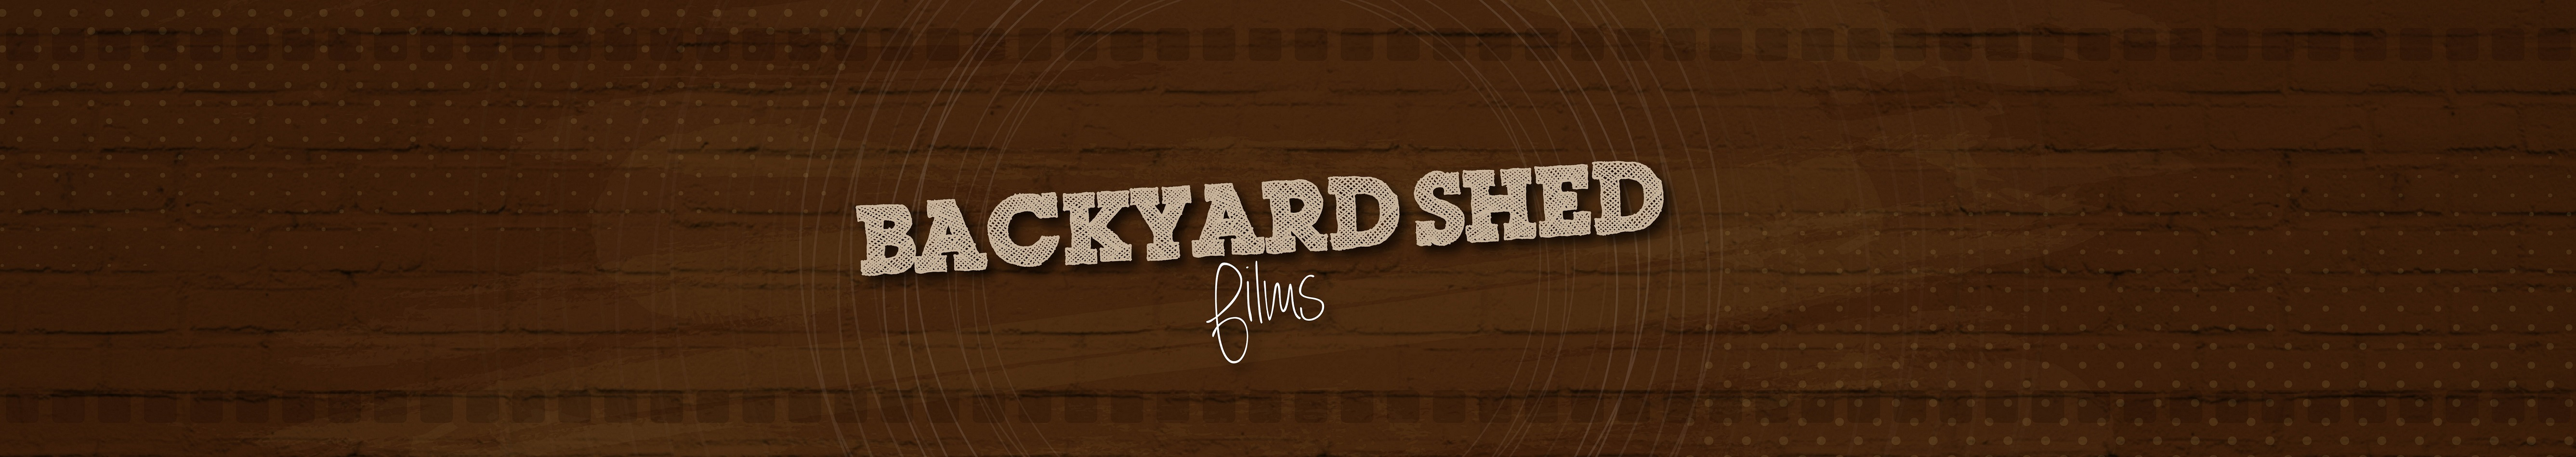 Checklist | Backyard Shed Films